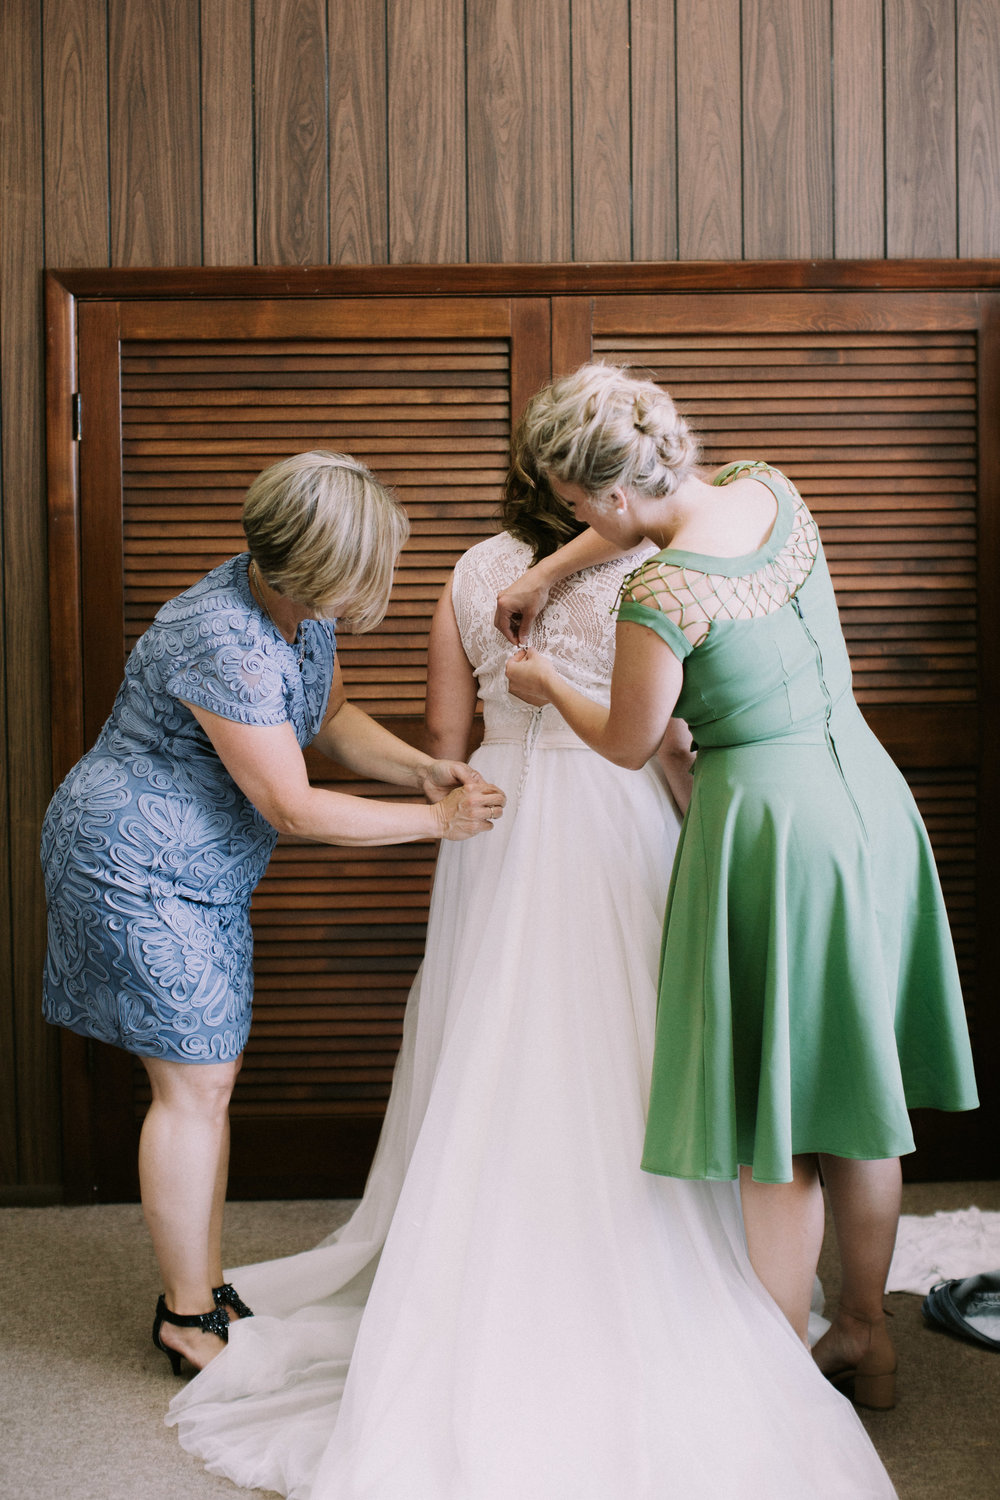 Adorable and lively St. Louis wedding at Ninth  Ashley Pieper Photography, St. Louis  documentary Wedding photographer for the genuine couple in love.